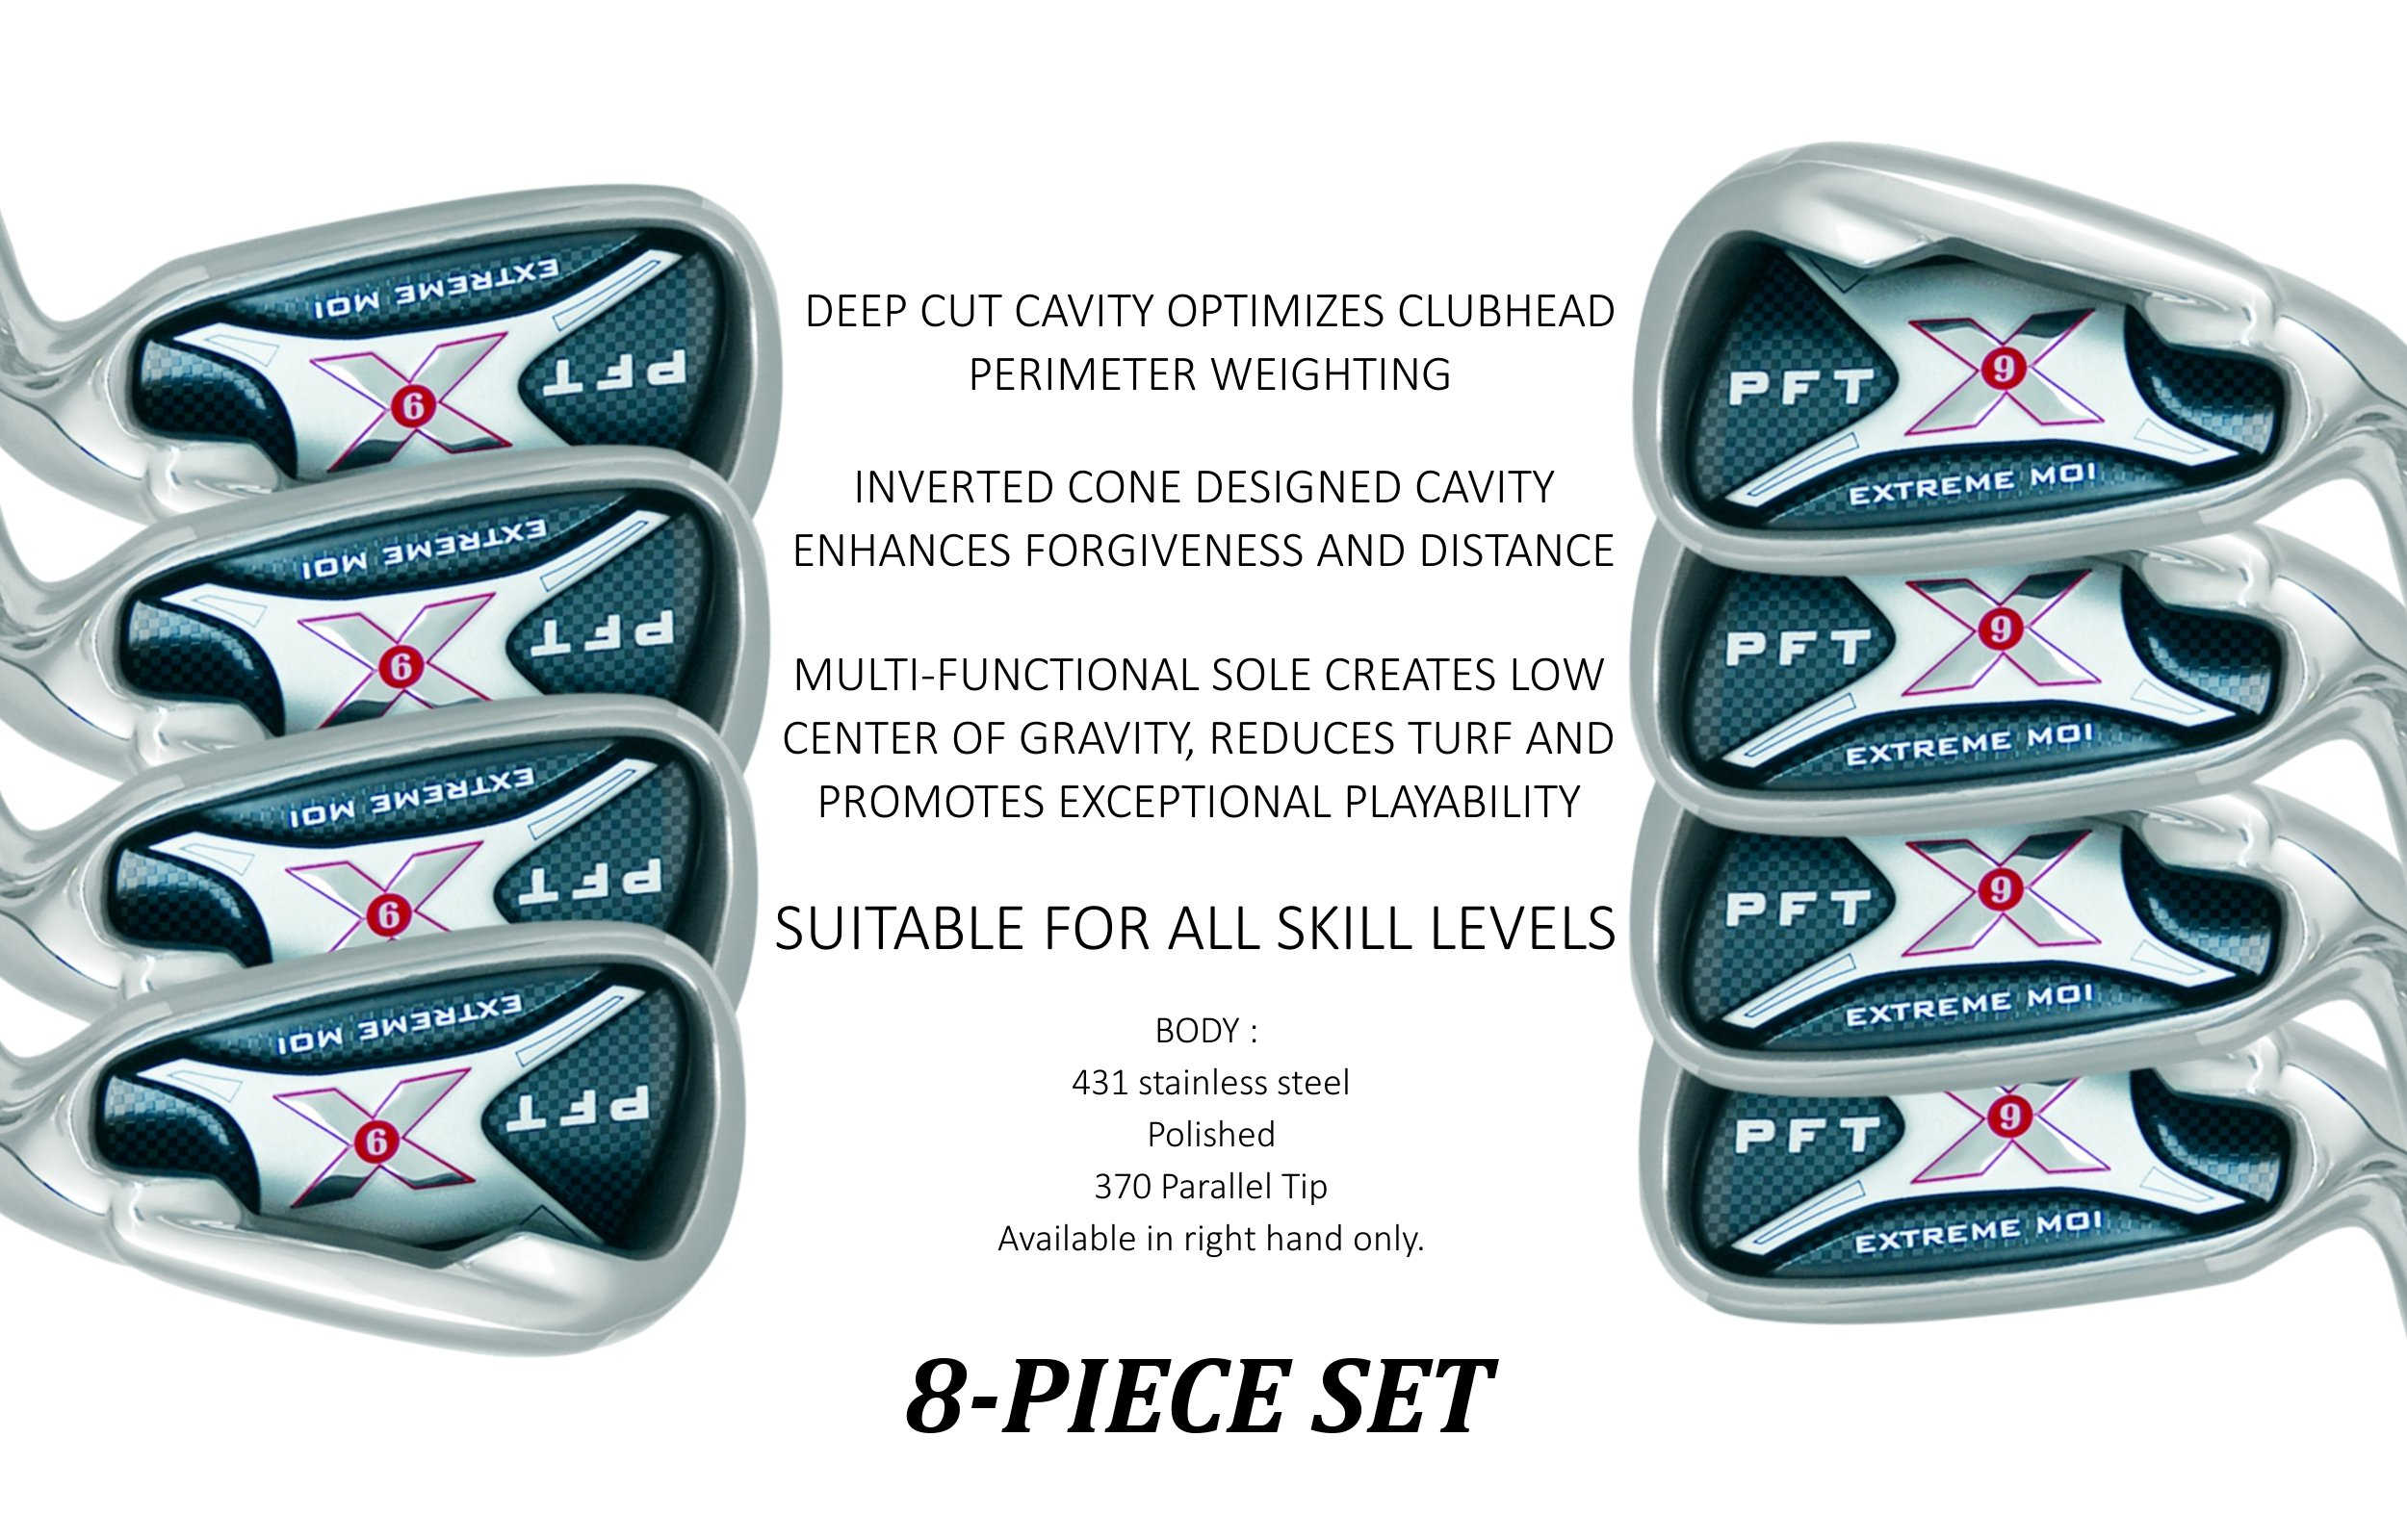 PFT X9 High Moi Extreme 9 Iron Set Golf Clubs Custom Made Right Hand Stiff S Flex Steel Shafts Complete Mens Irons Ultra Forgiving OS Oversized Wide Sole Ibrid Club by PFT X9 (Image #2)